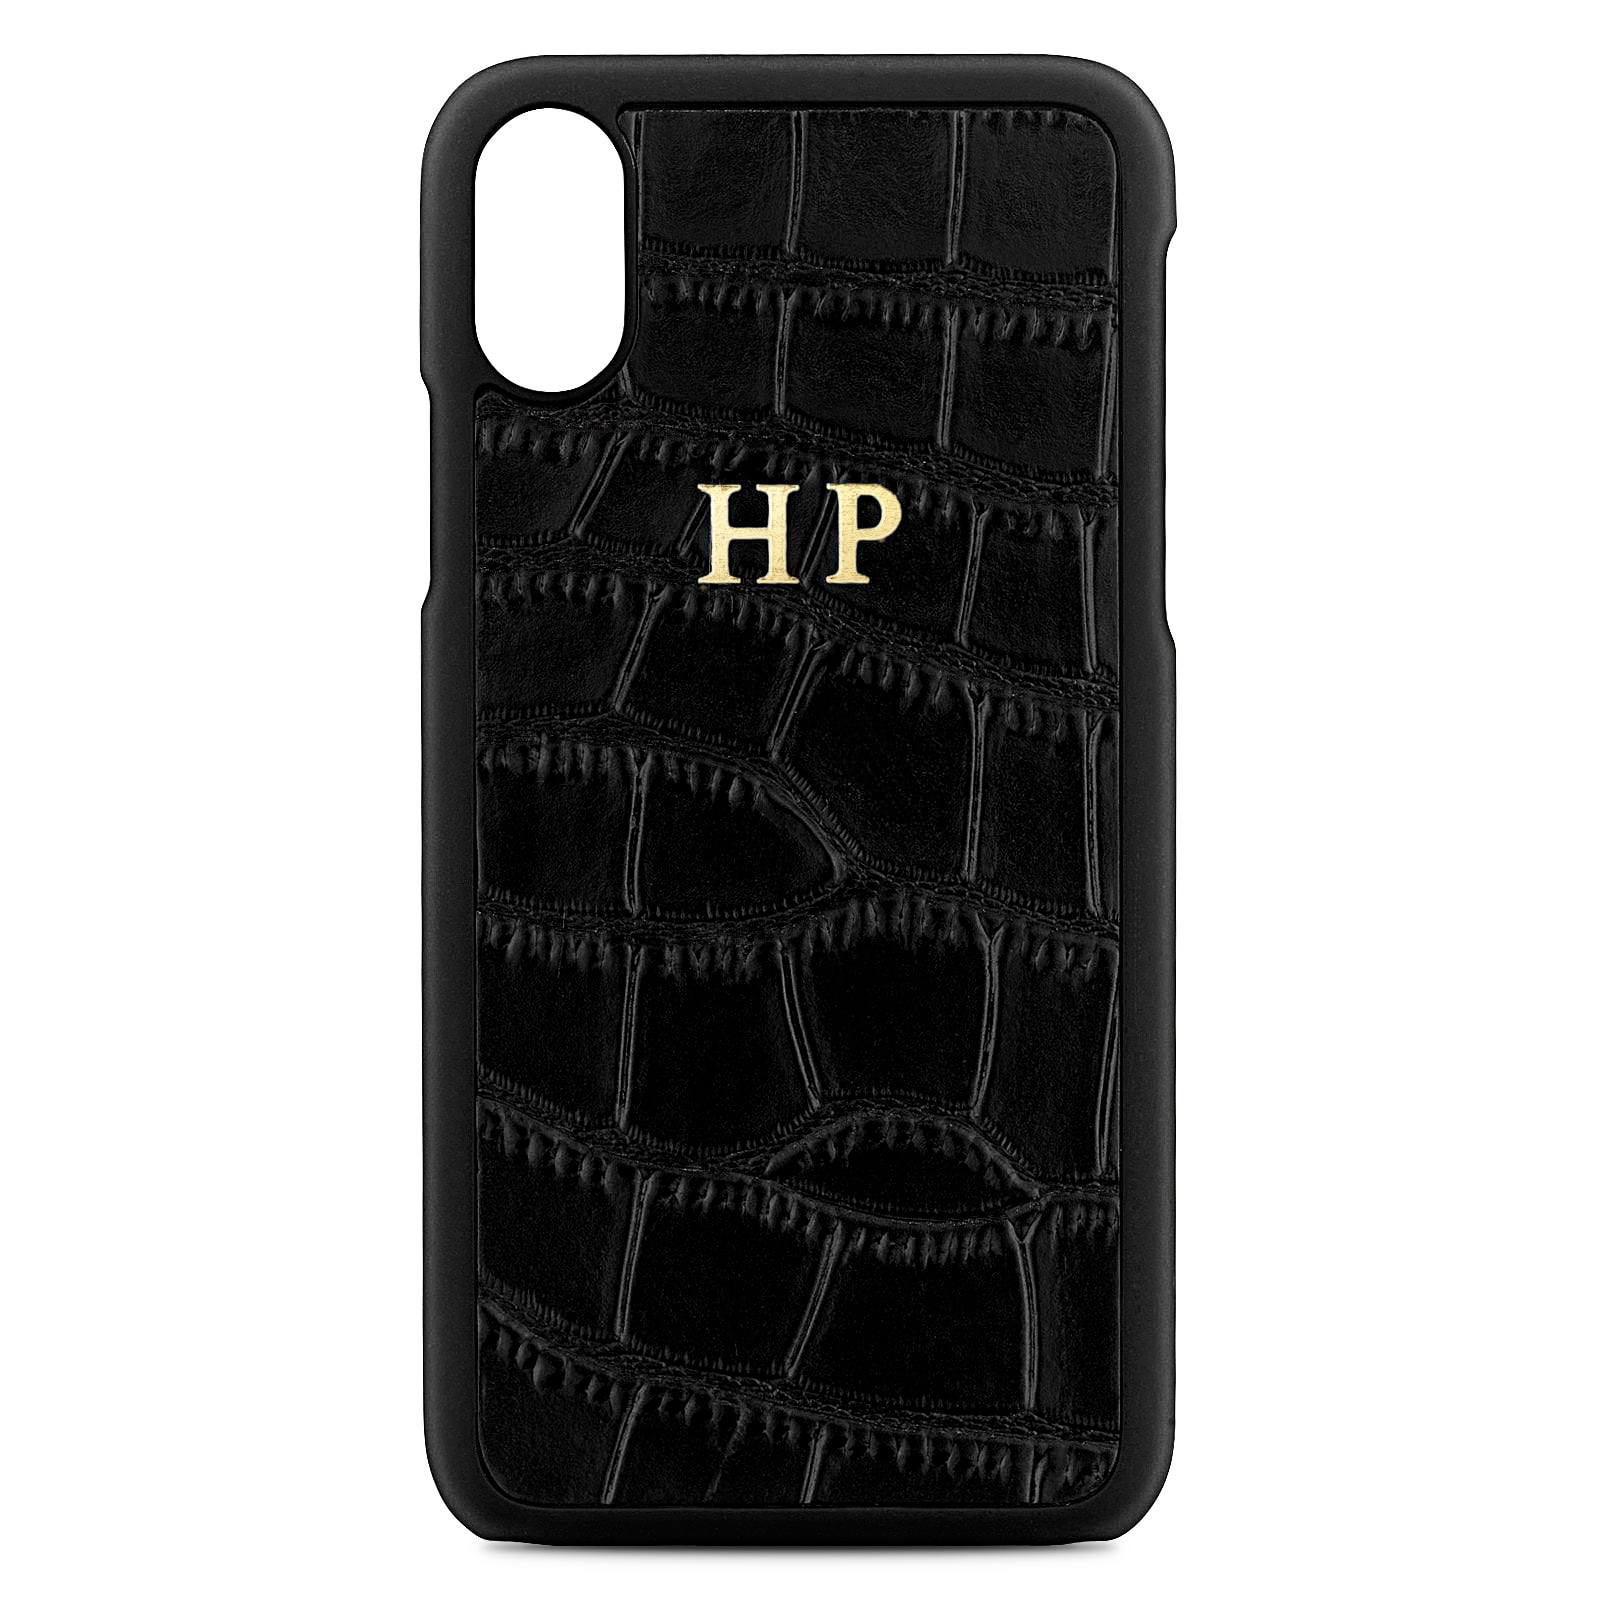 cheap for discount 1a146 fbe0a Personalised Black Croc Leather iPhone Case